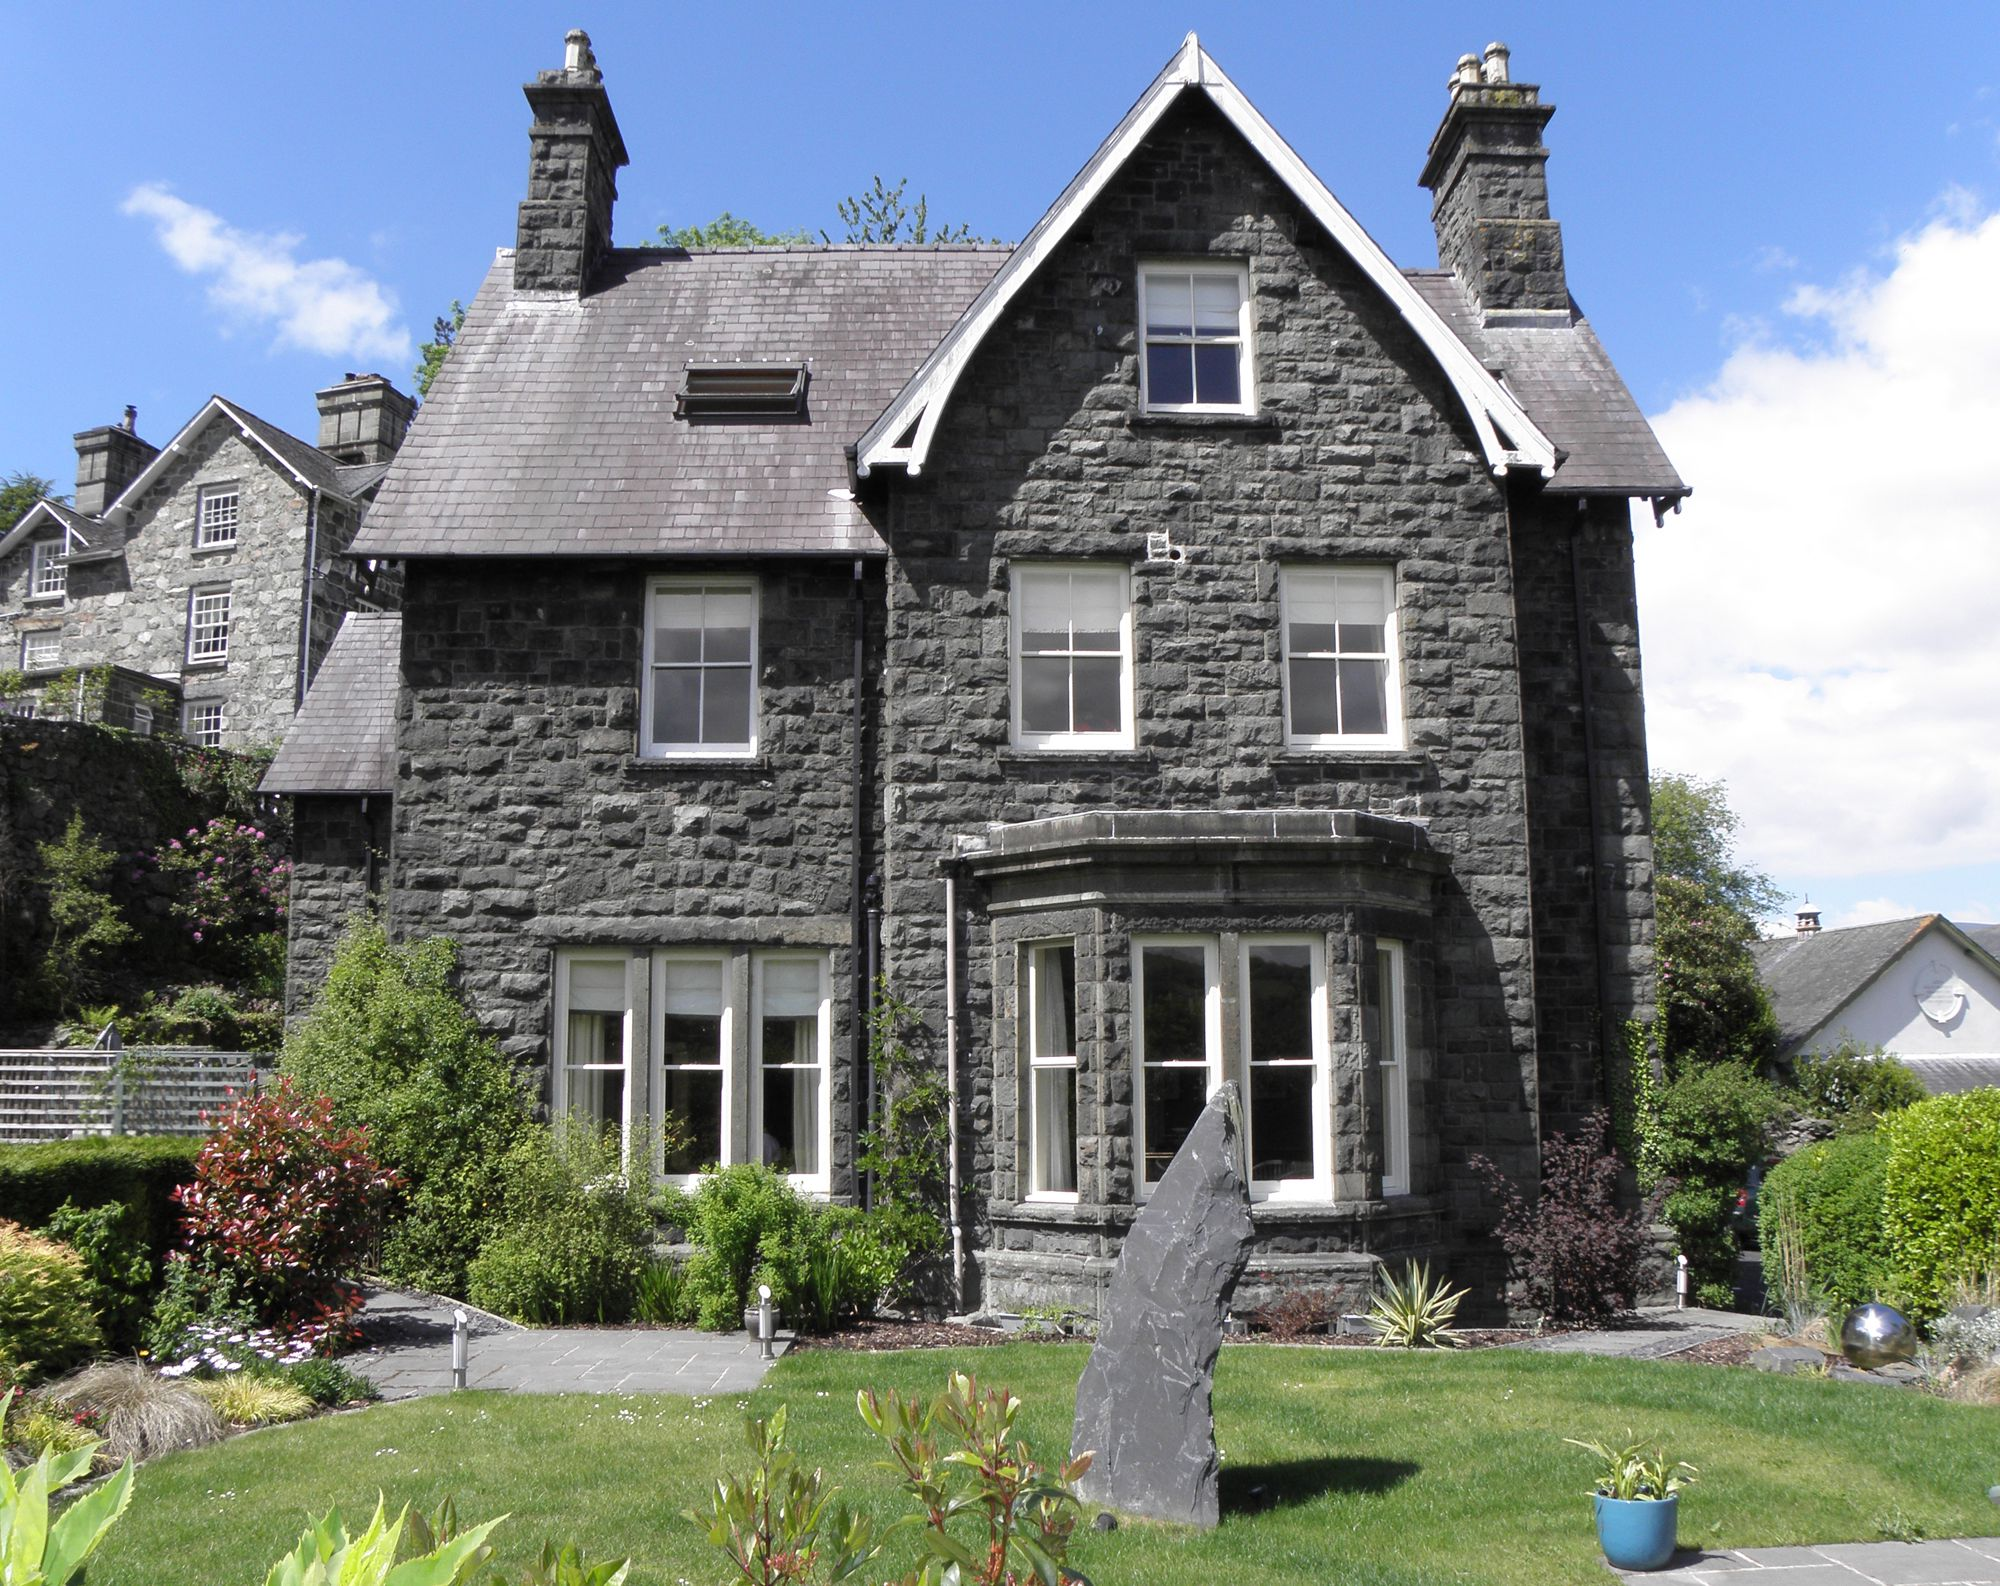 Hotels in Dolgellau holidays at Cool Places